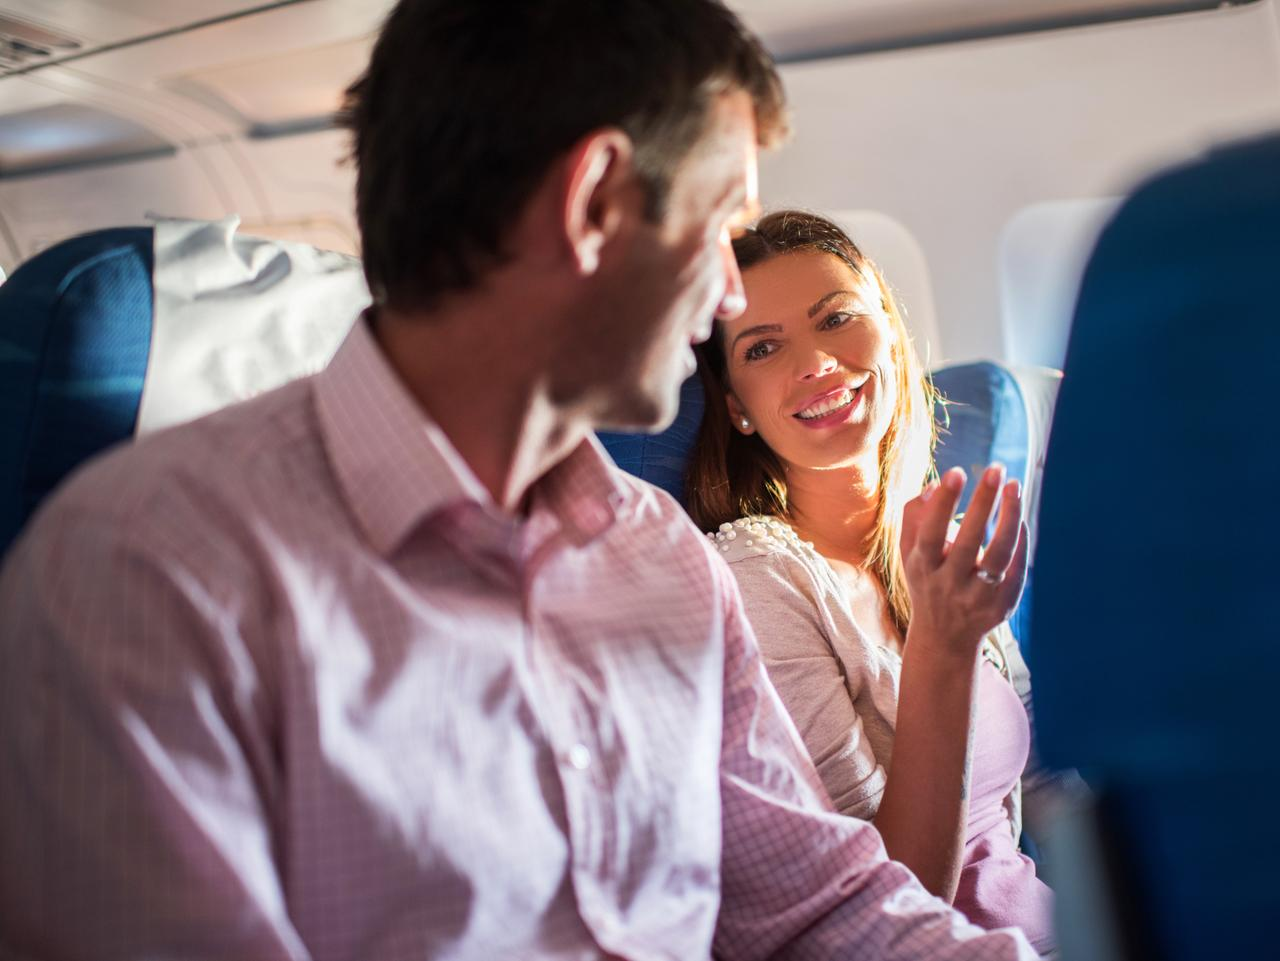 Happy couple sitting in the airplane and communicating. Focus is on woman.